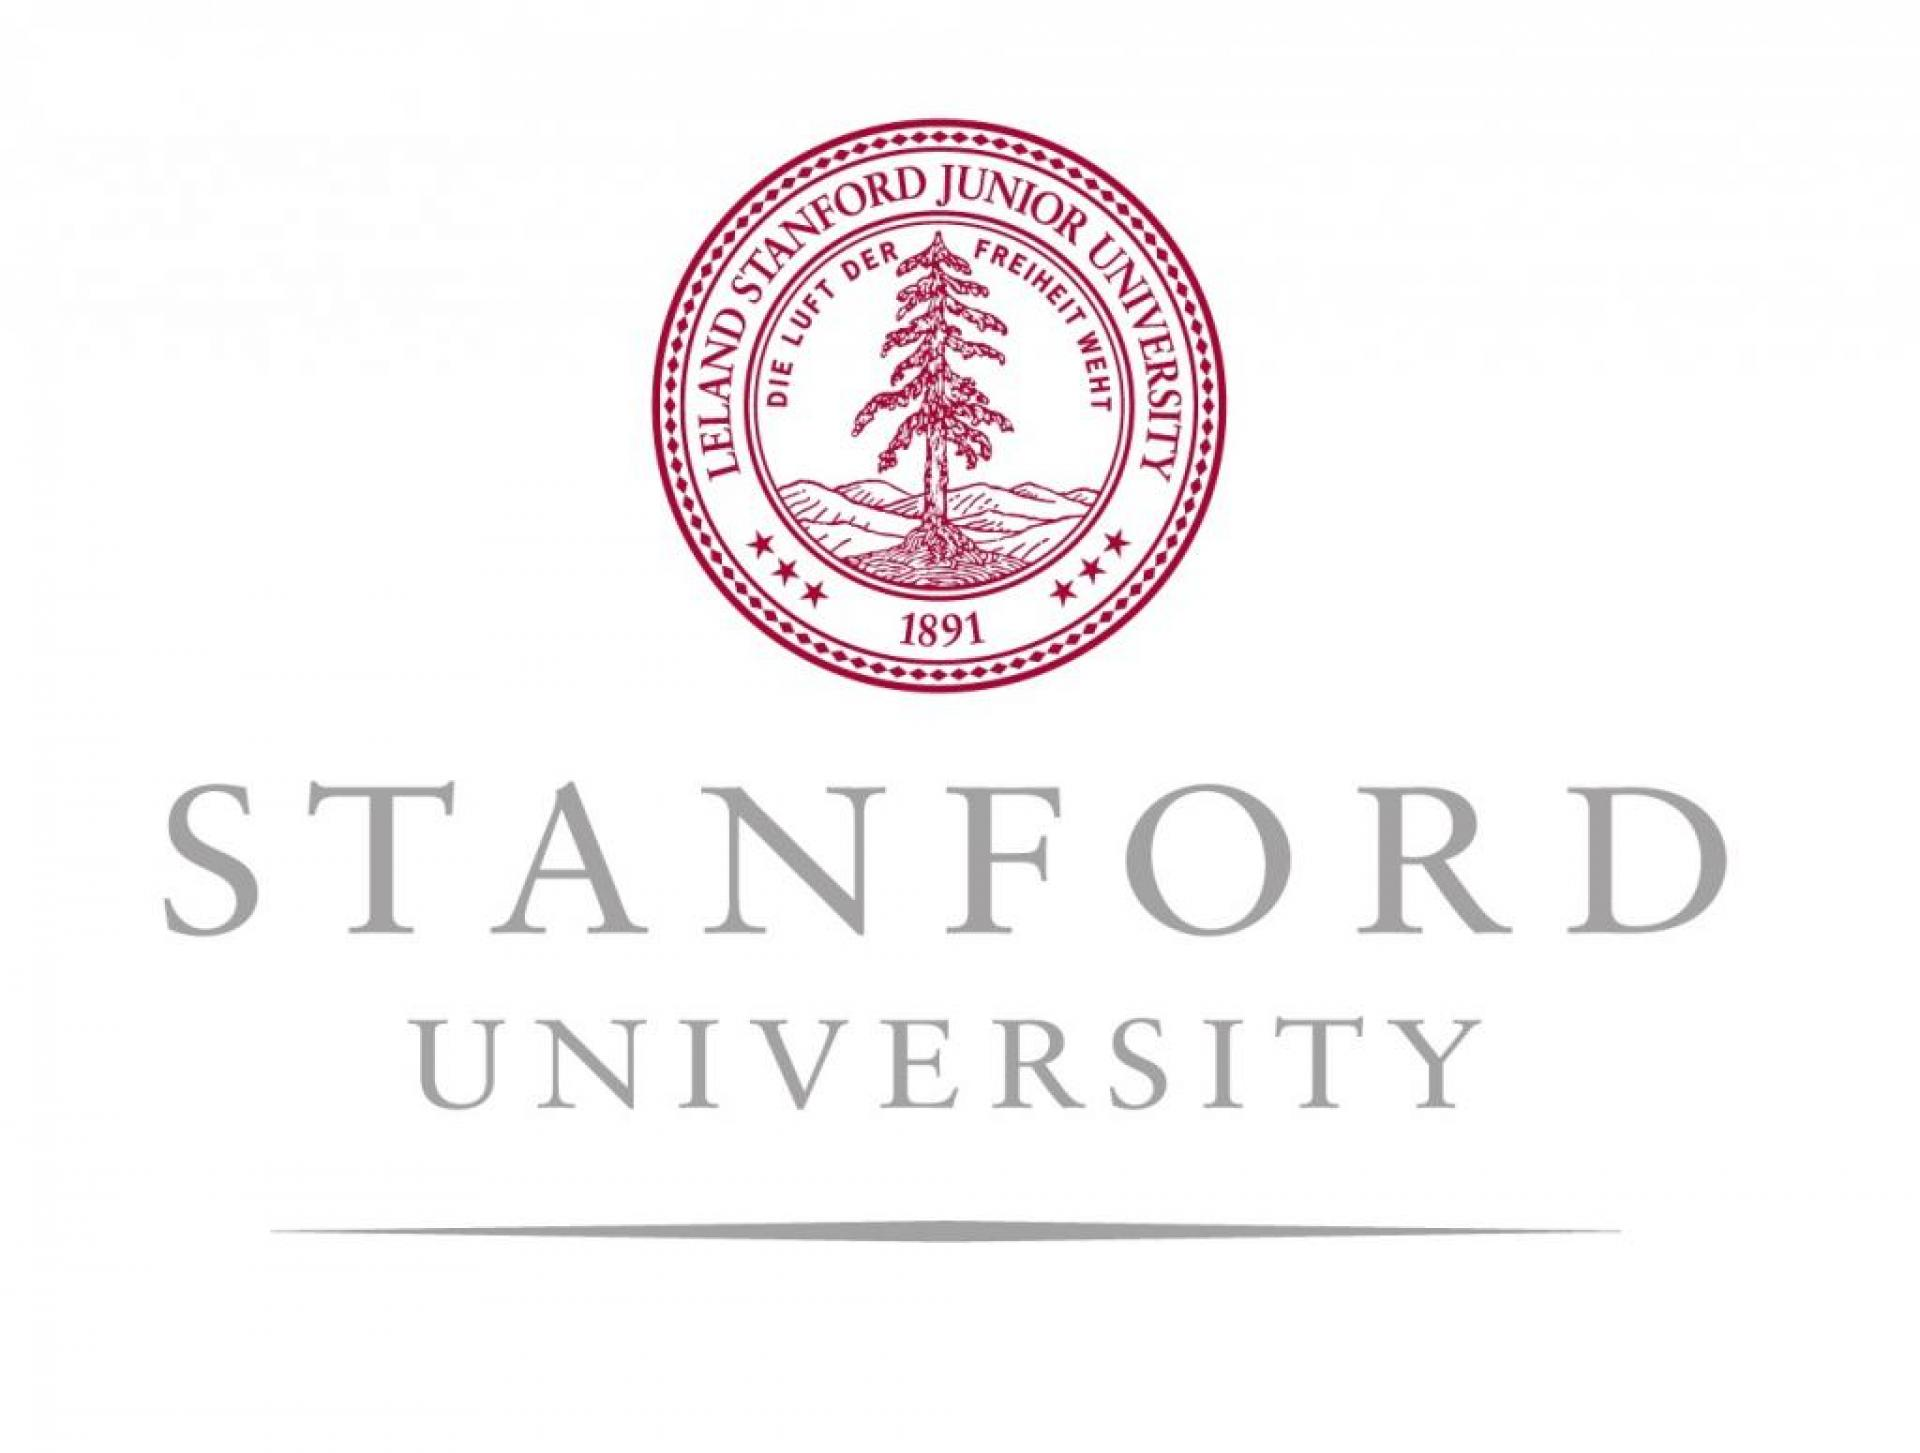 Standford University Logo - stanford-university-logo - Youth Village Zimbabwe